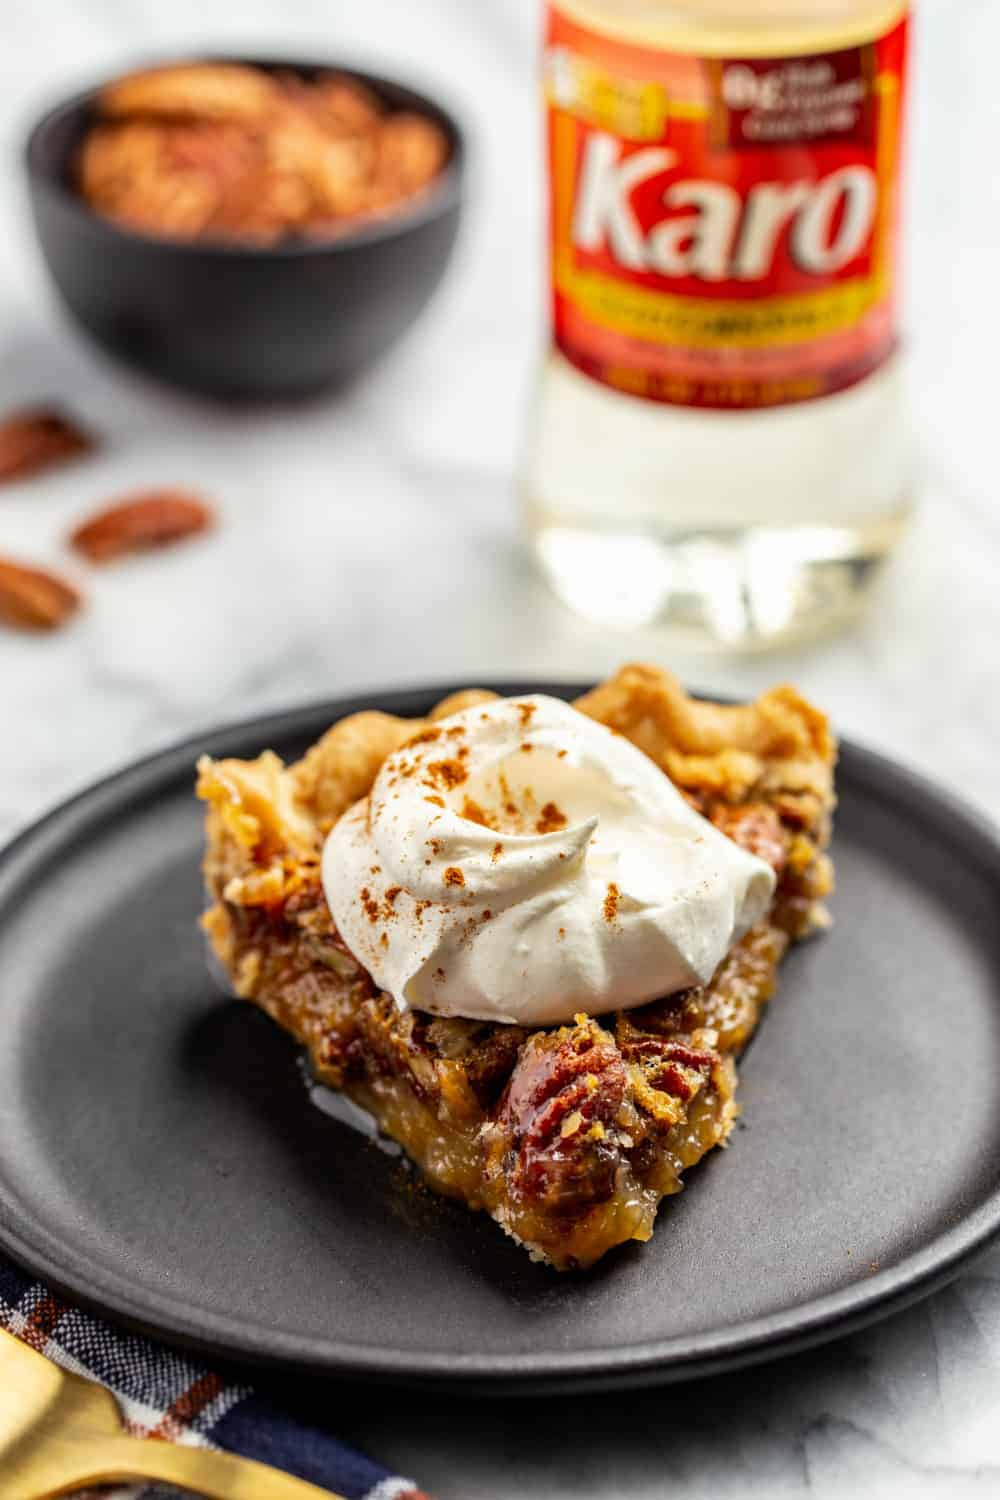 Slice of classic pecan pie on a black plate, topped with whipped cream